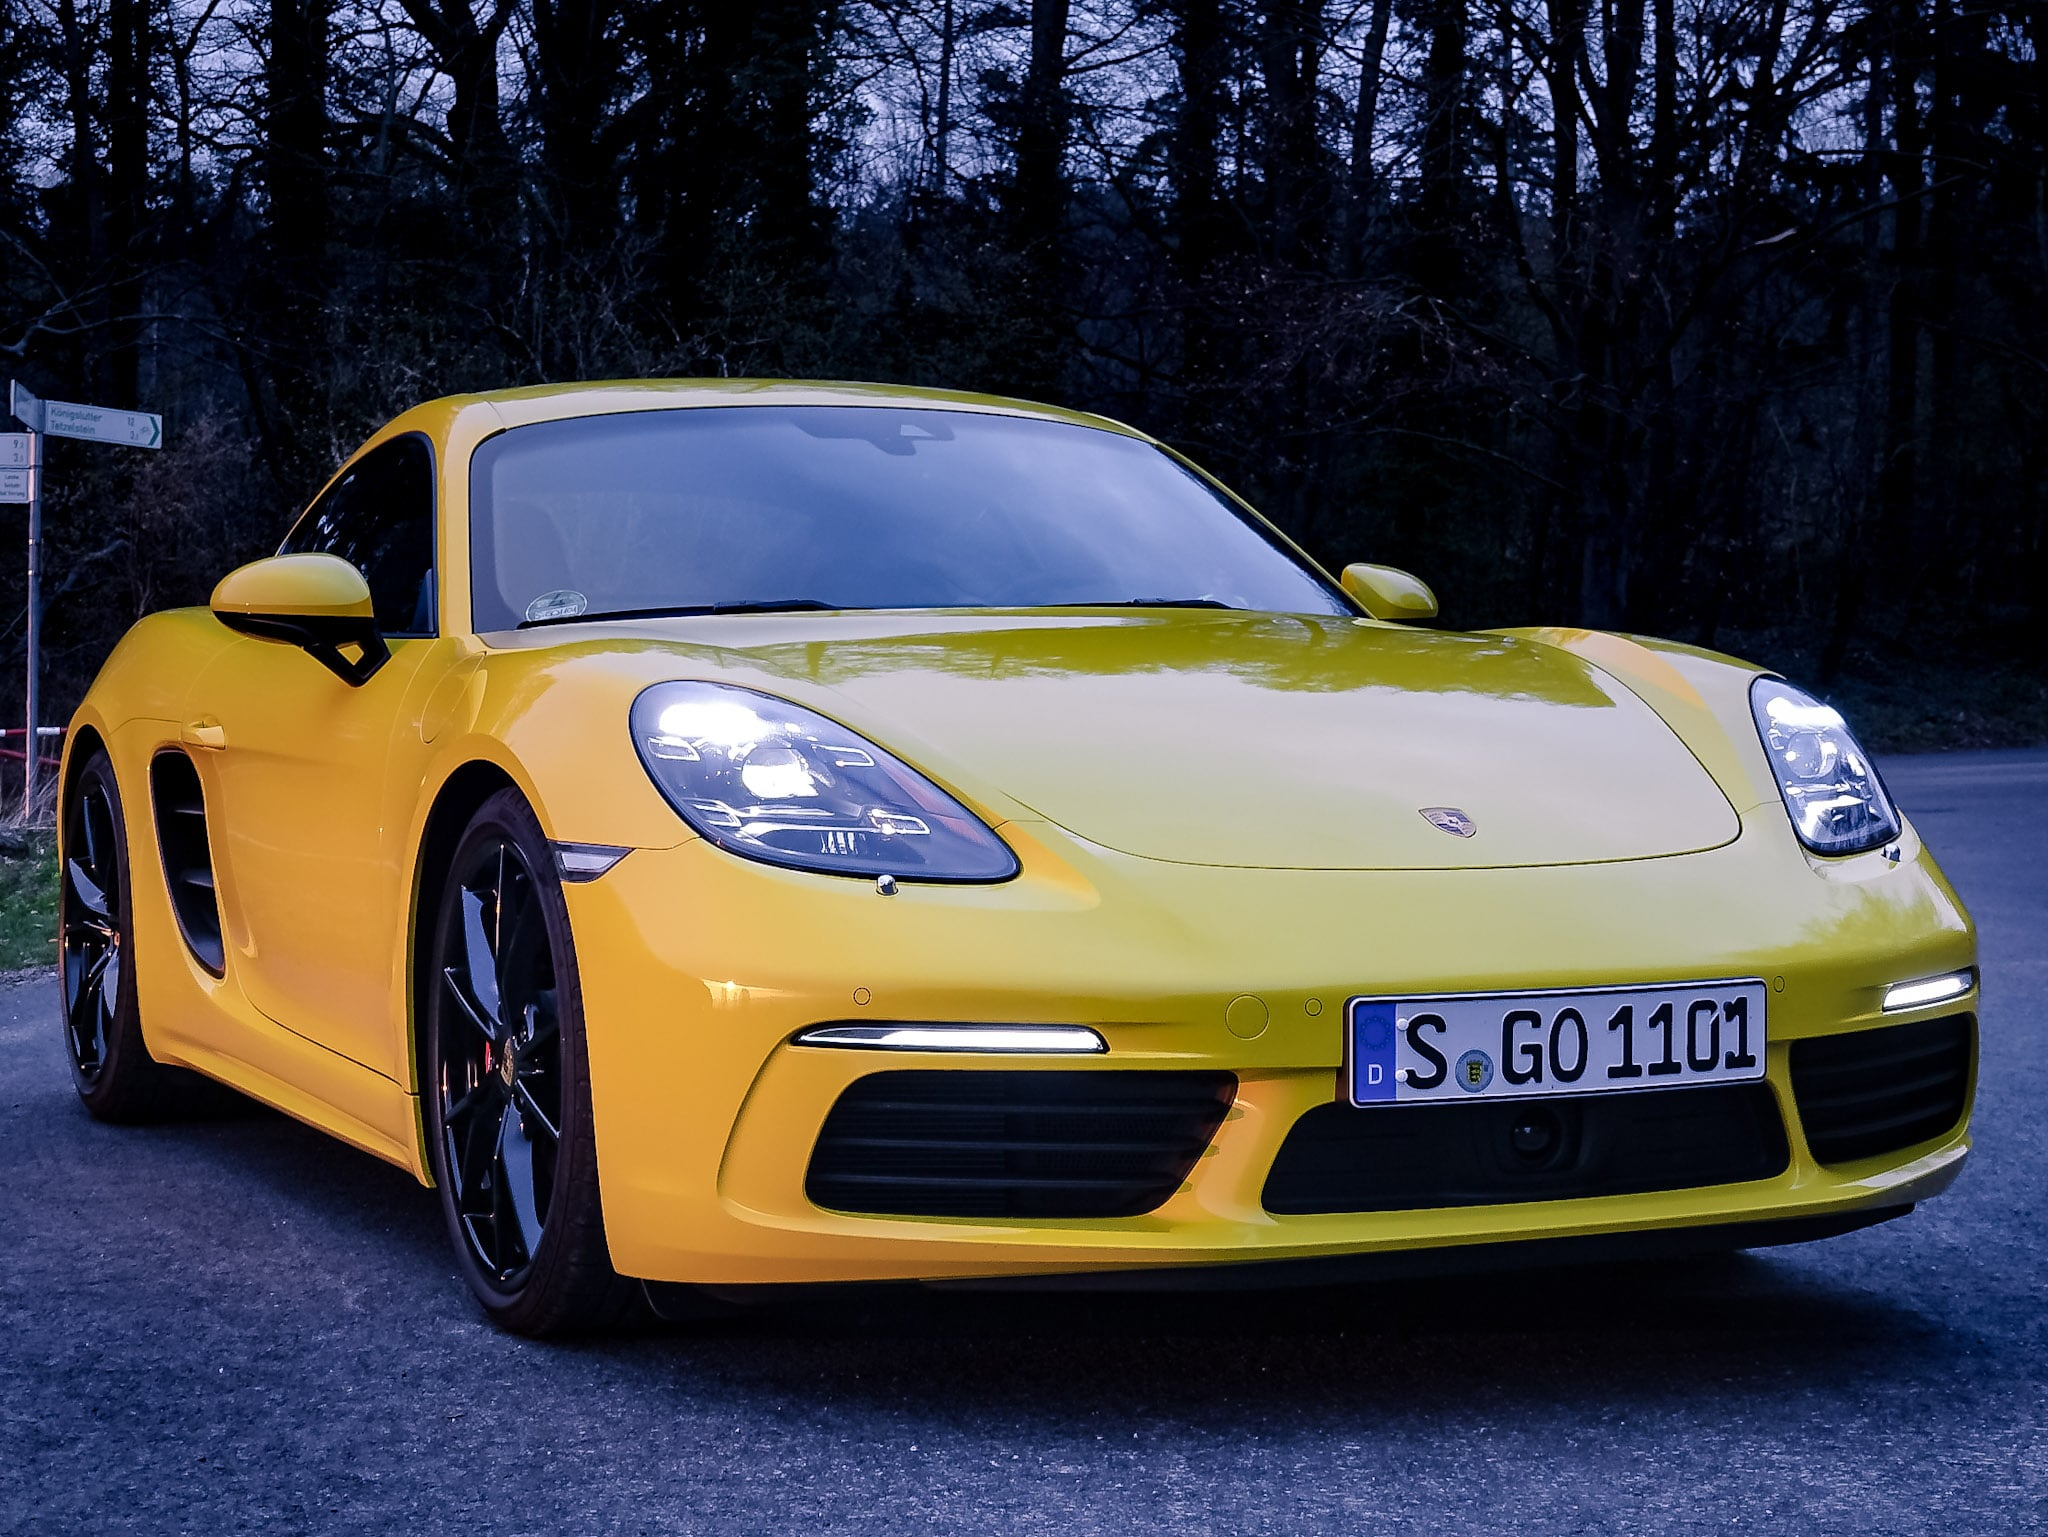 Blog – Porsche 718 Cayman S – 4Cylinder? What a weapon!